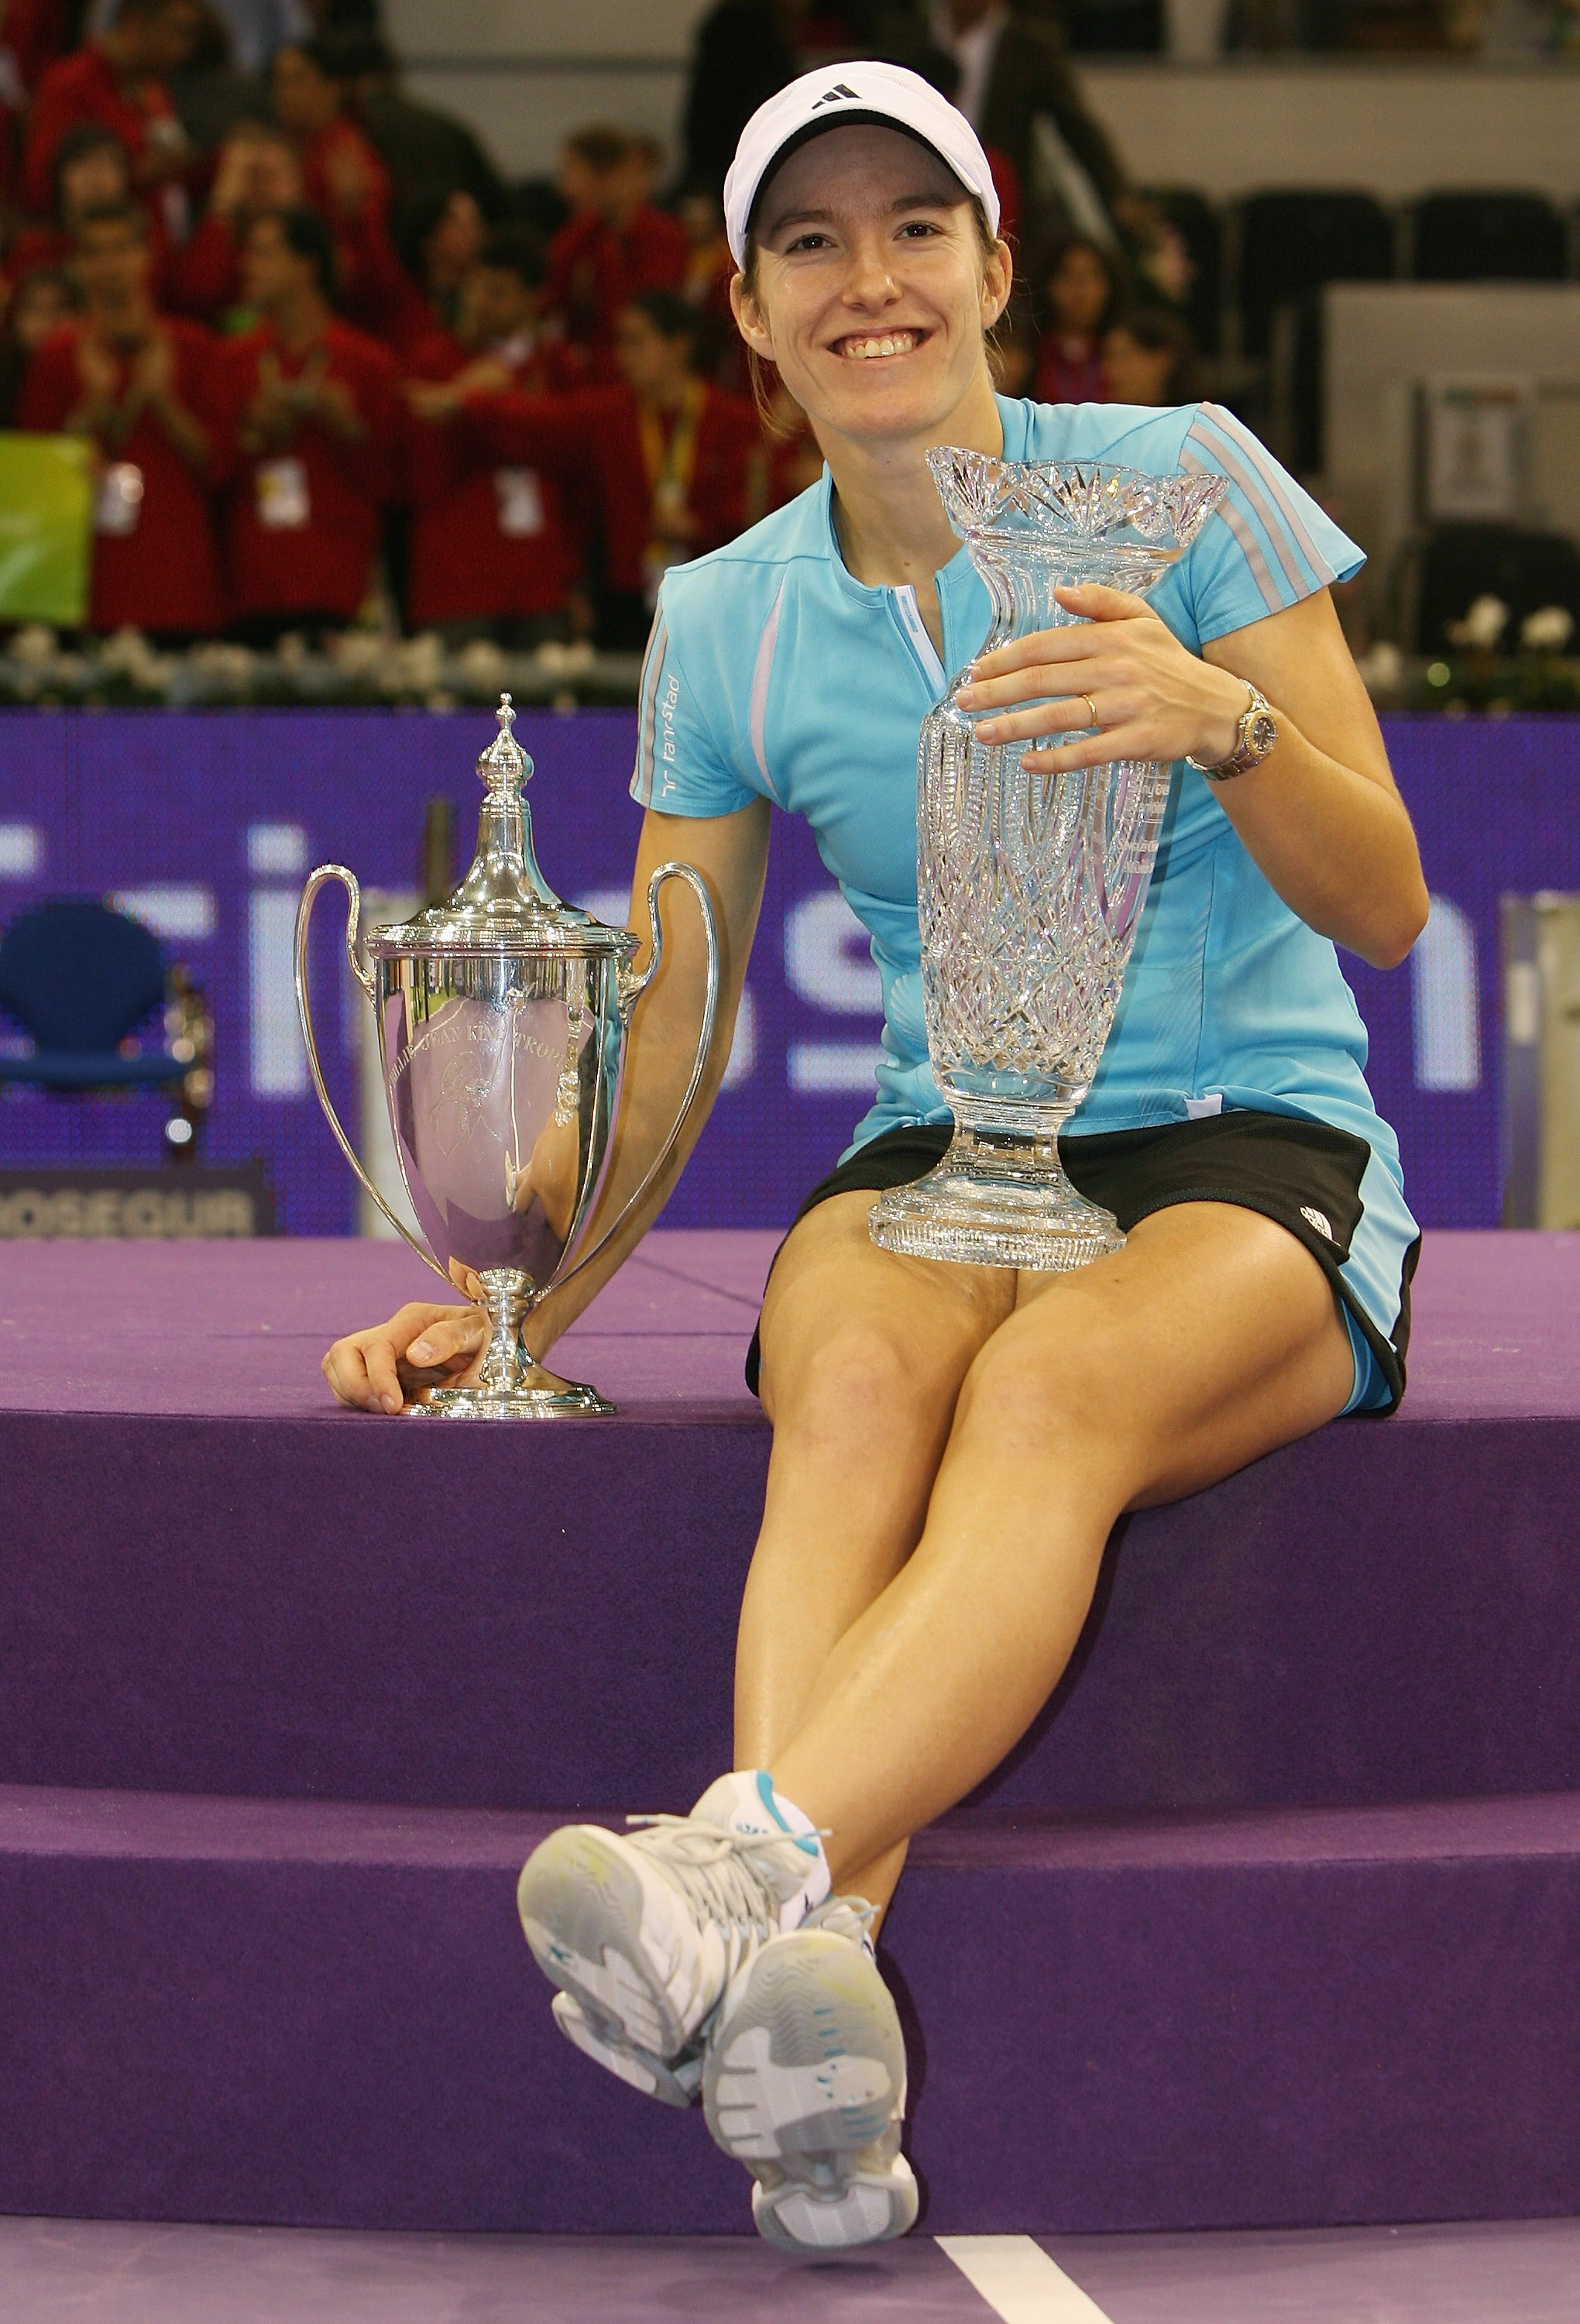 Justine Henin wins her first WTA Finals title and finishes the year No. 1.